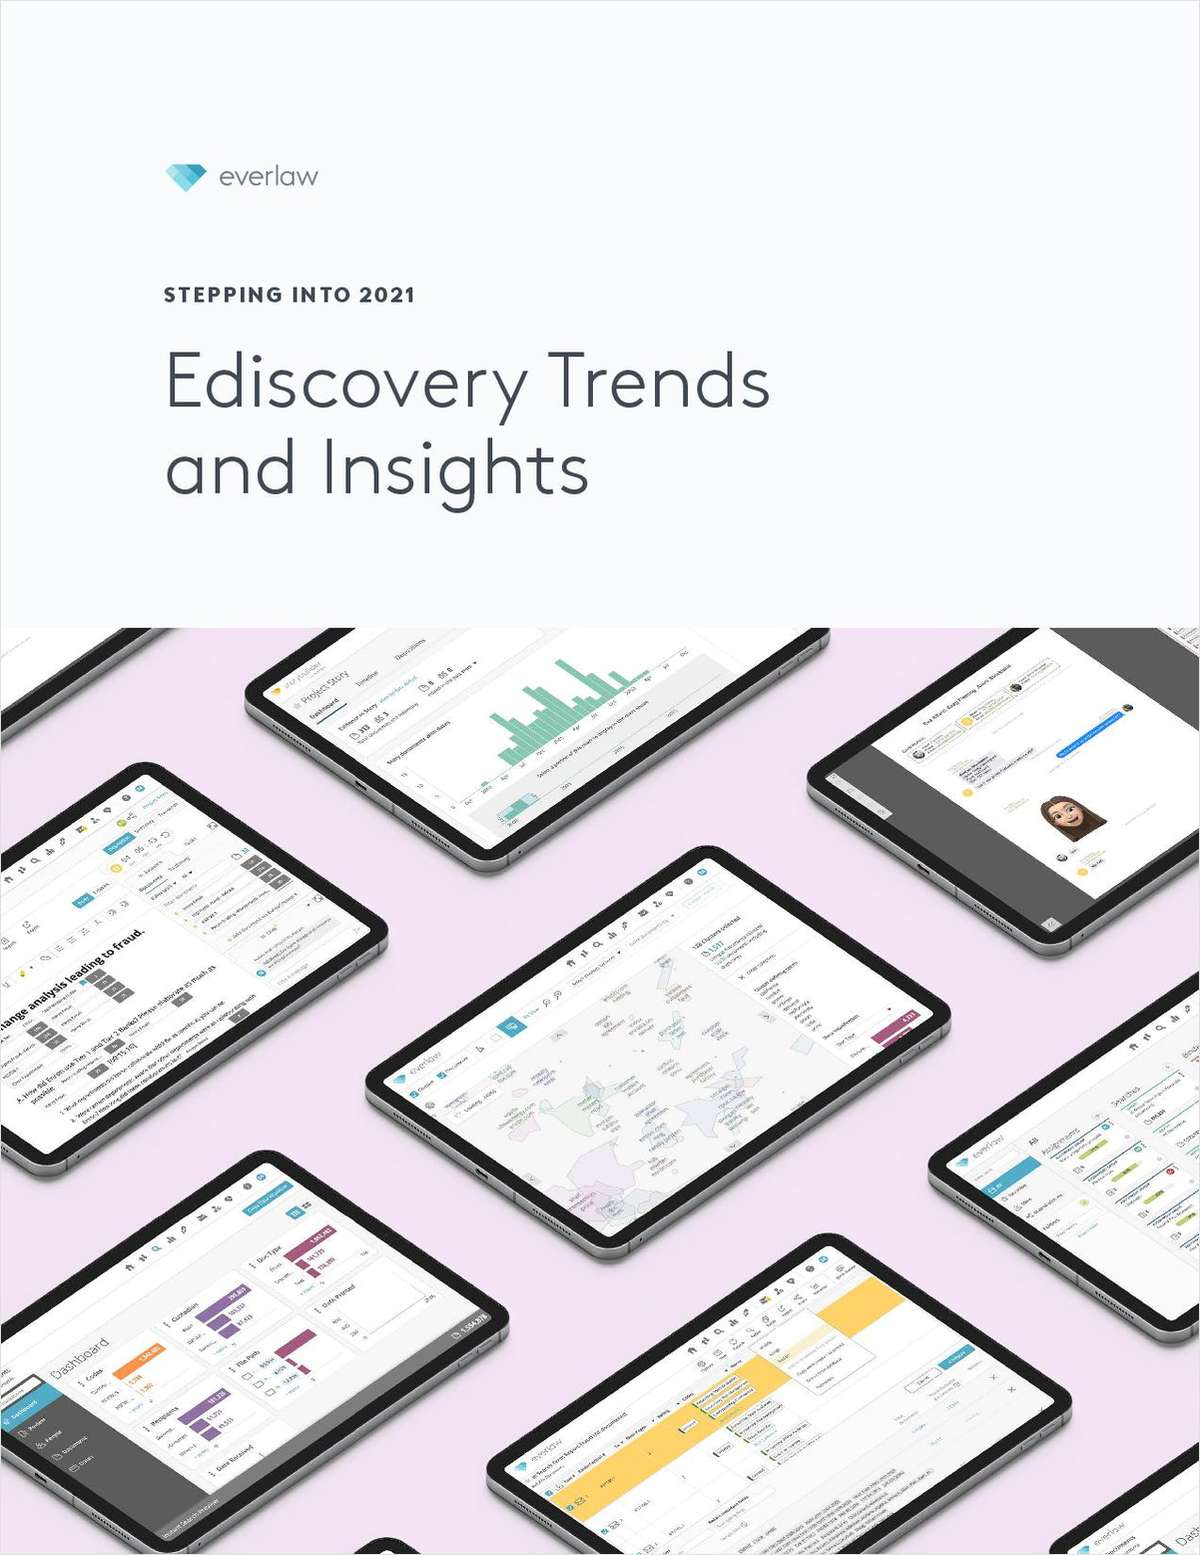 In 2020, legal professionals had to learn how to adapt to new circumstances, both professionally and personally. To help make sense of all these changes, we created a report that provides an in-depth analysis of user trends and behaviors on the Everlaw platform.